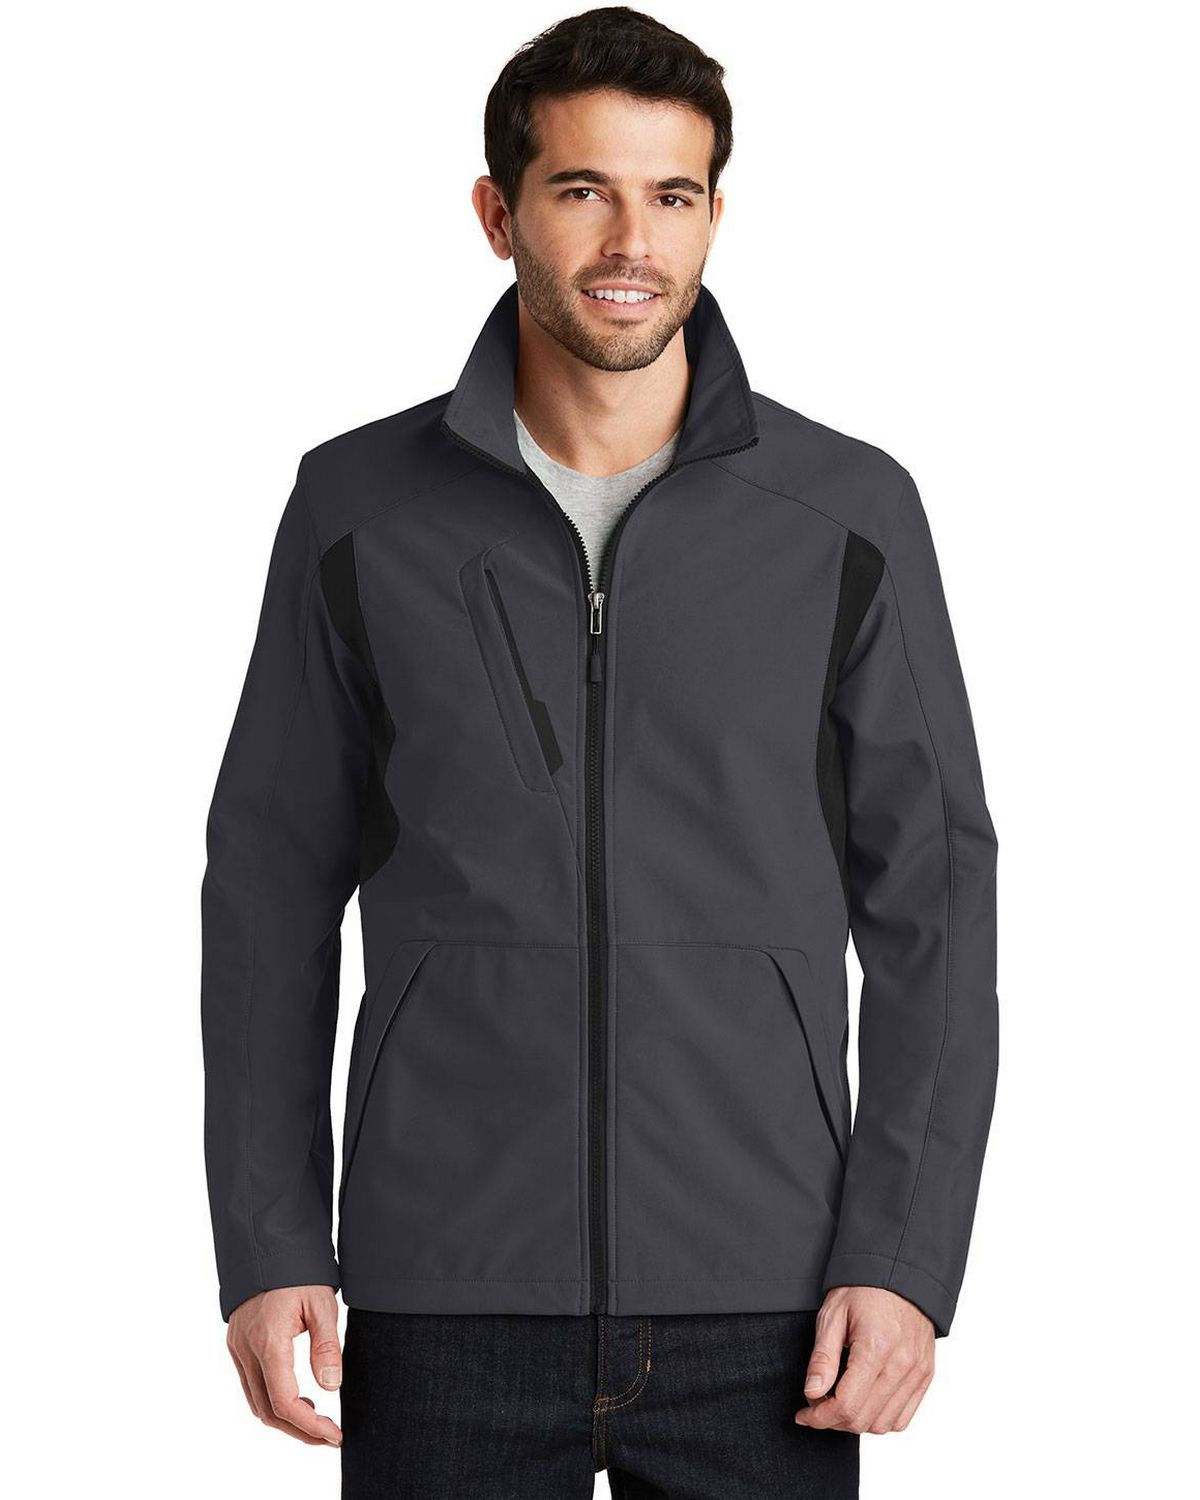 Port Authority J336 Mens Back Block Soft Shell Jacket